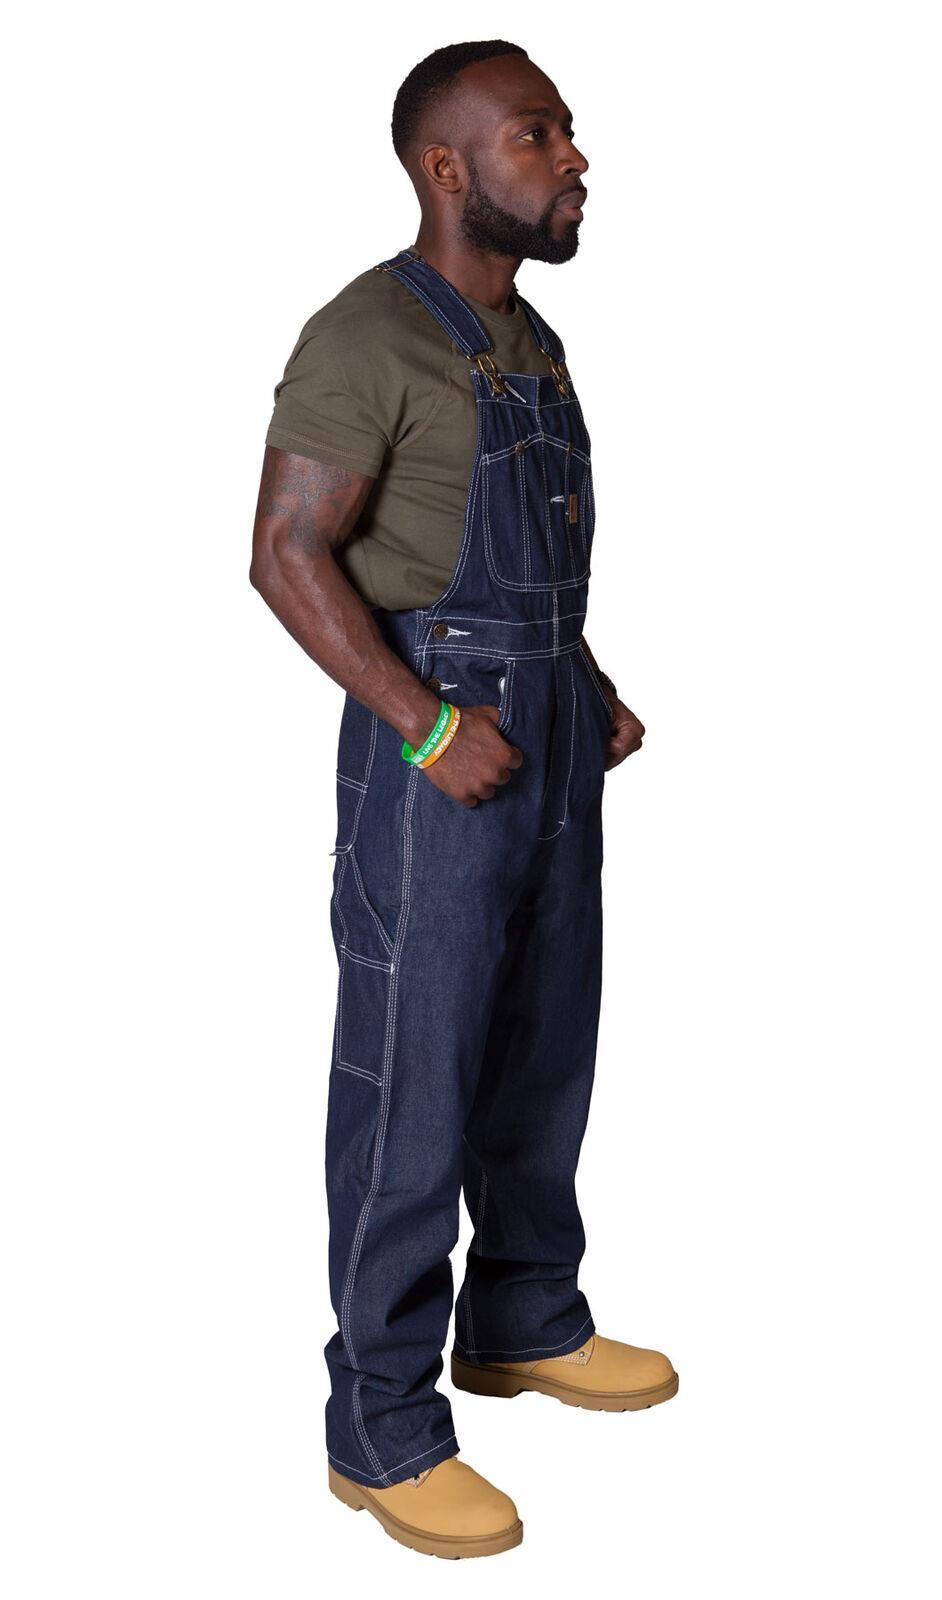 Full side pose wearing American indigo work dungarees showing side button fastening.